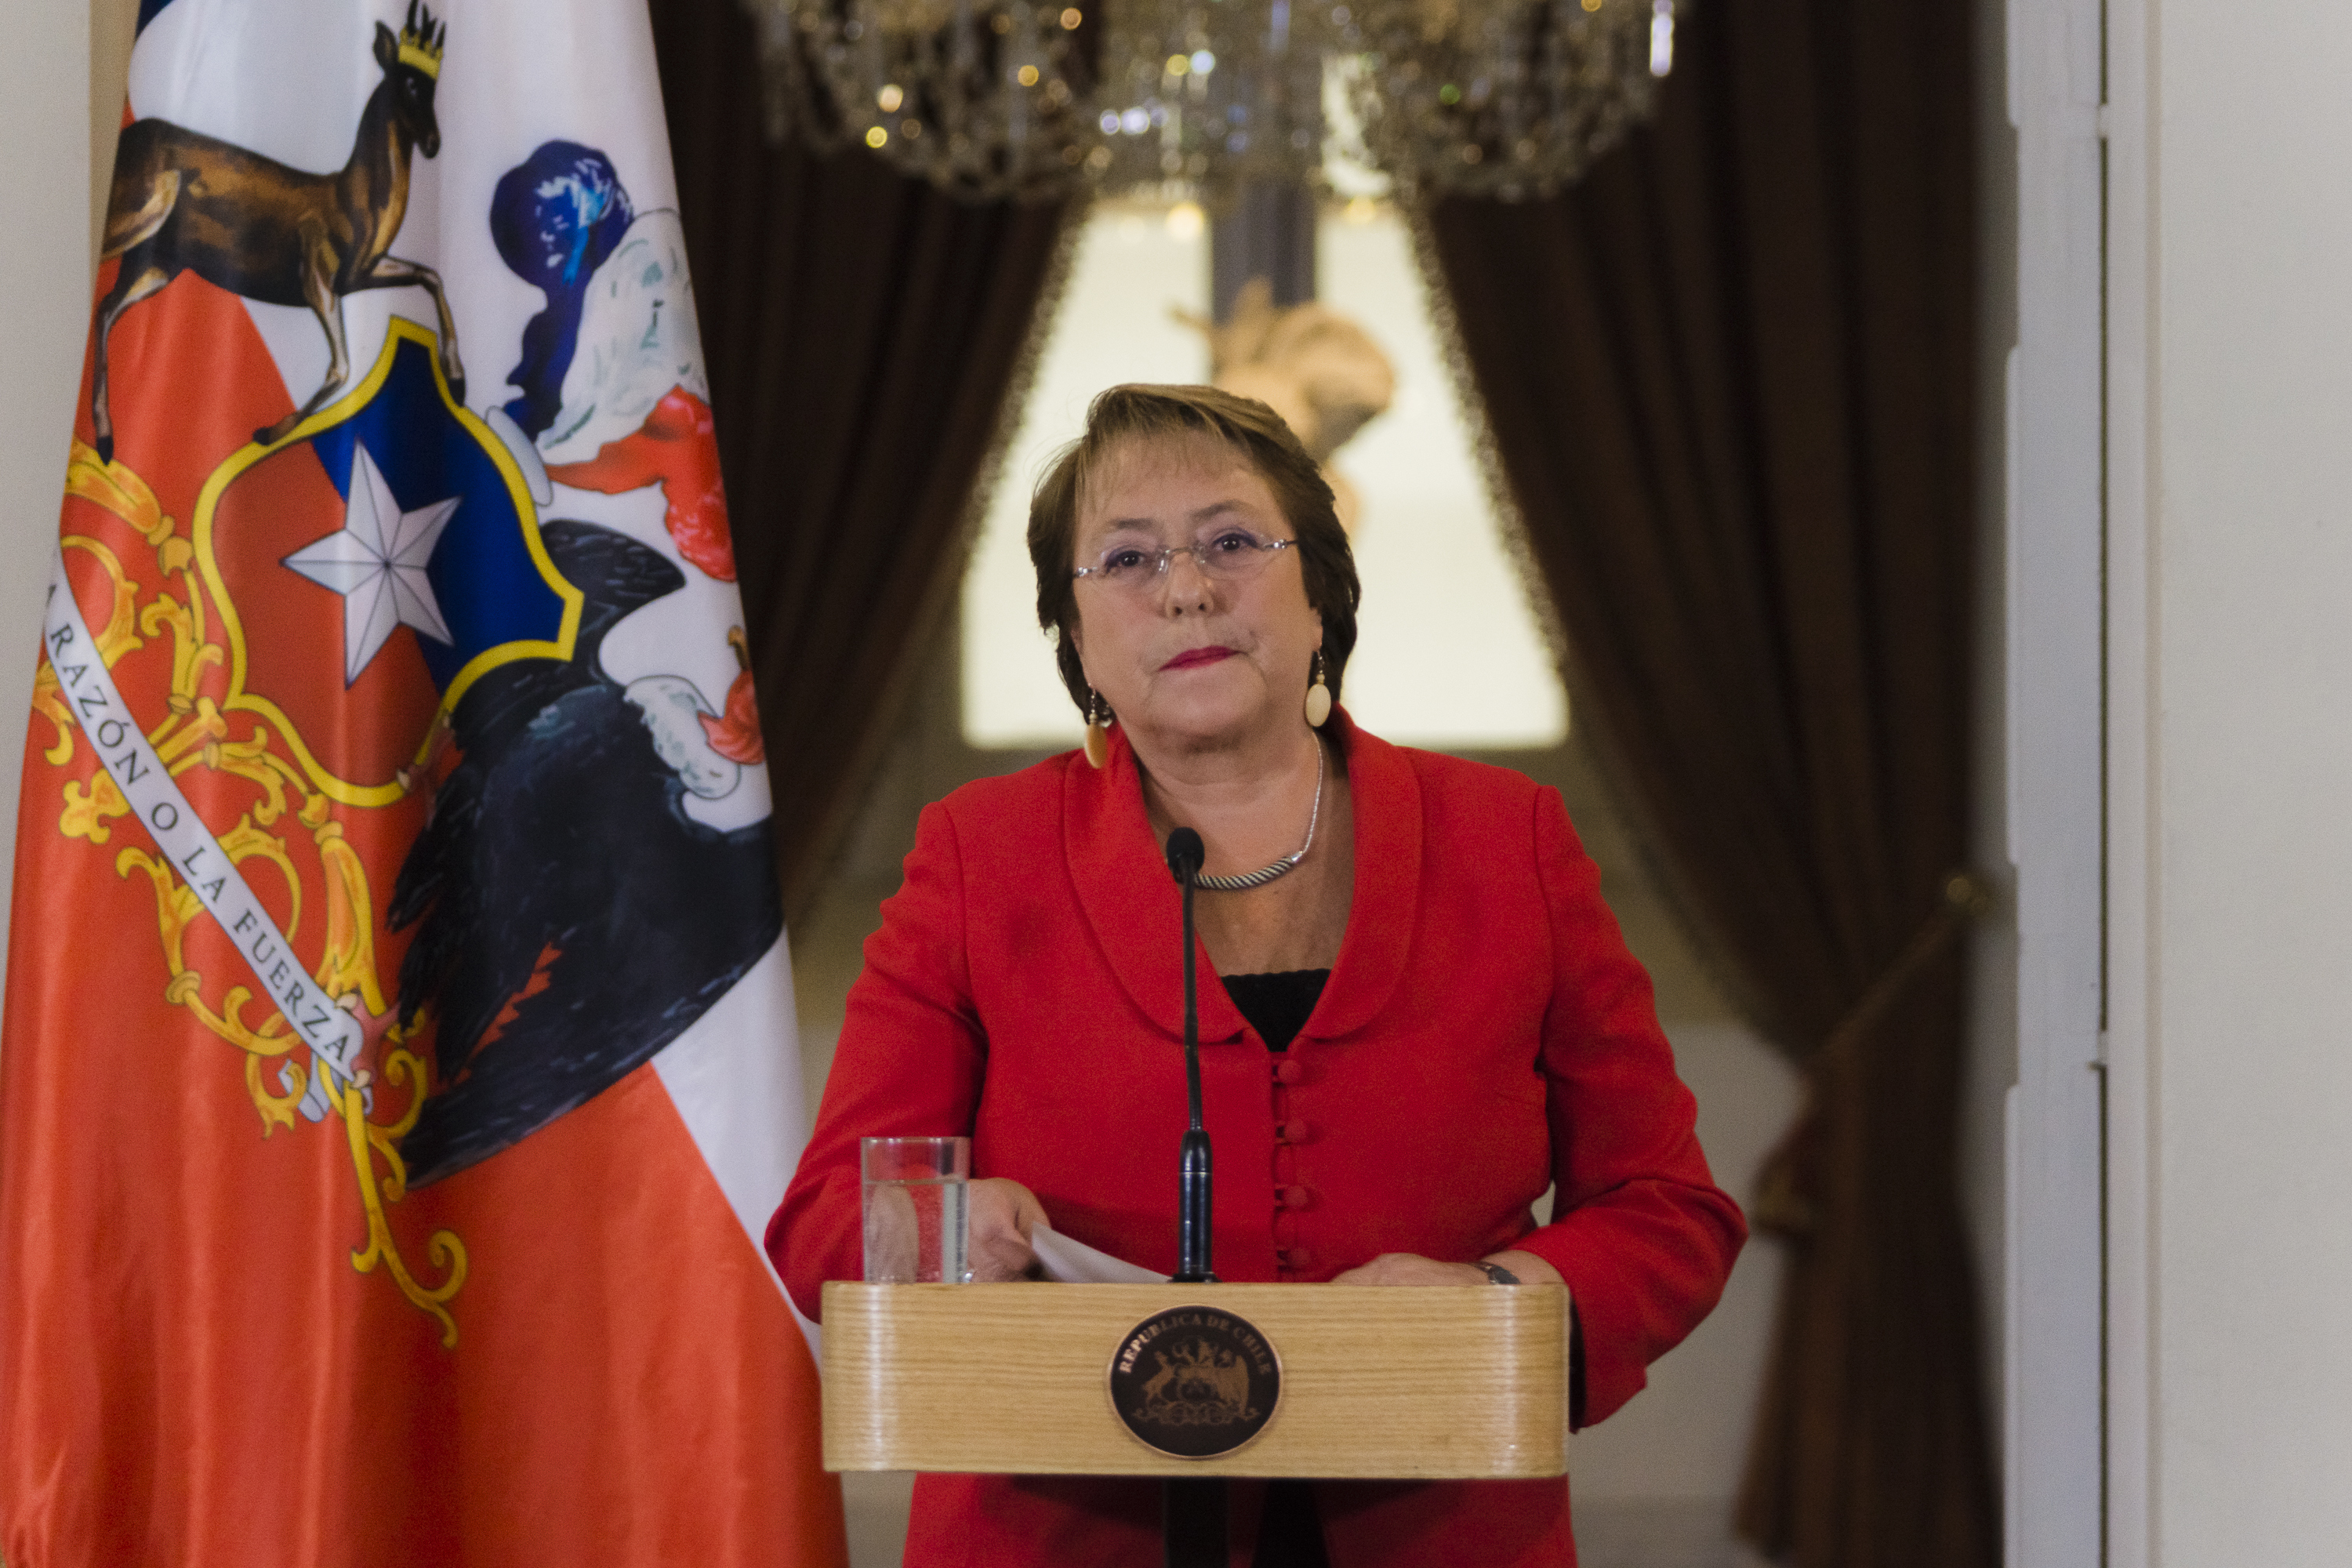 President Michelle Bachelet speaks during a press conference in Santiago, Chile, on Jan. 29, 2016.